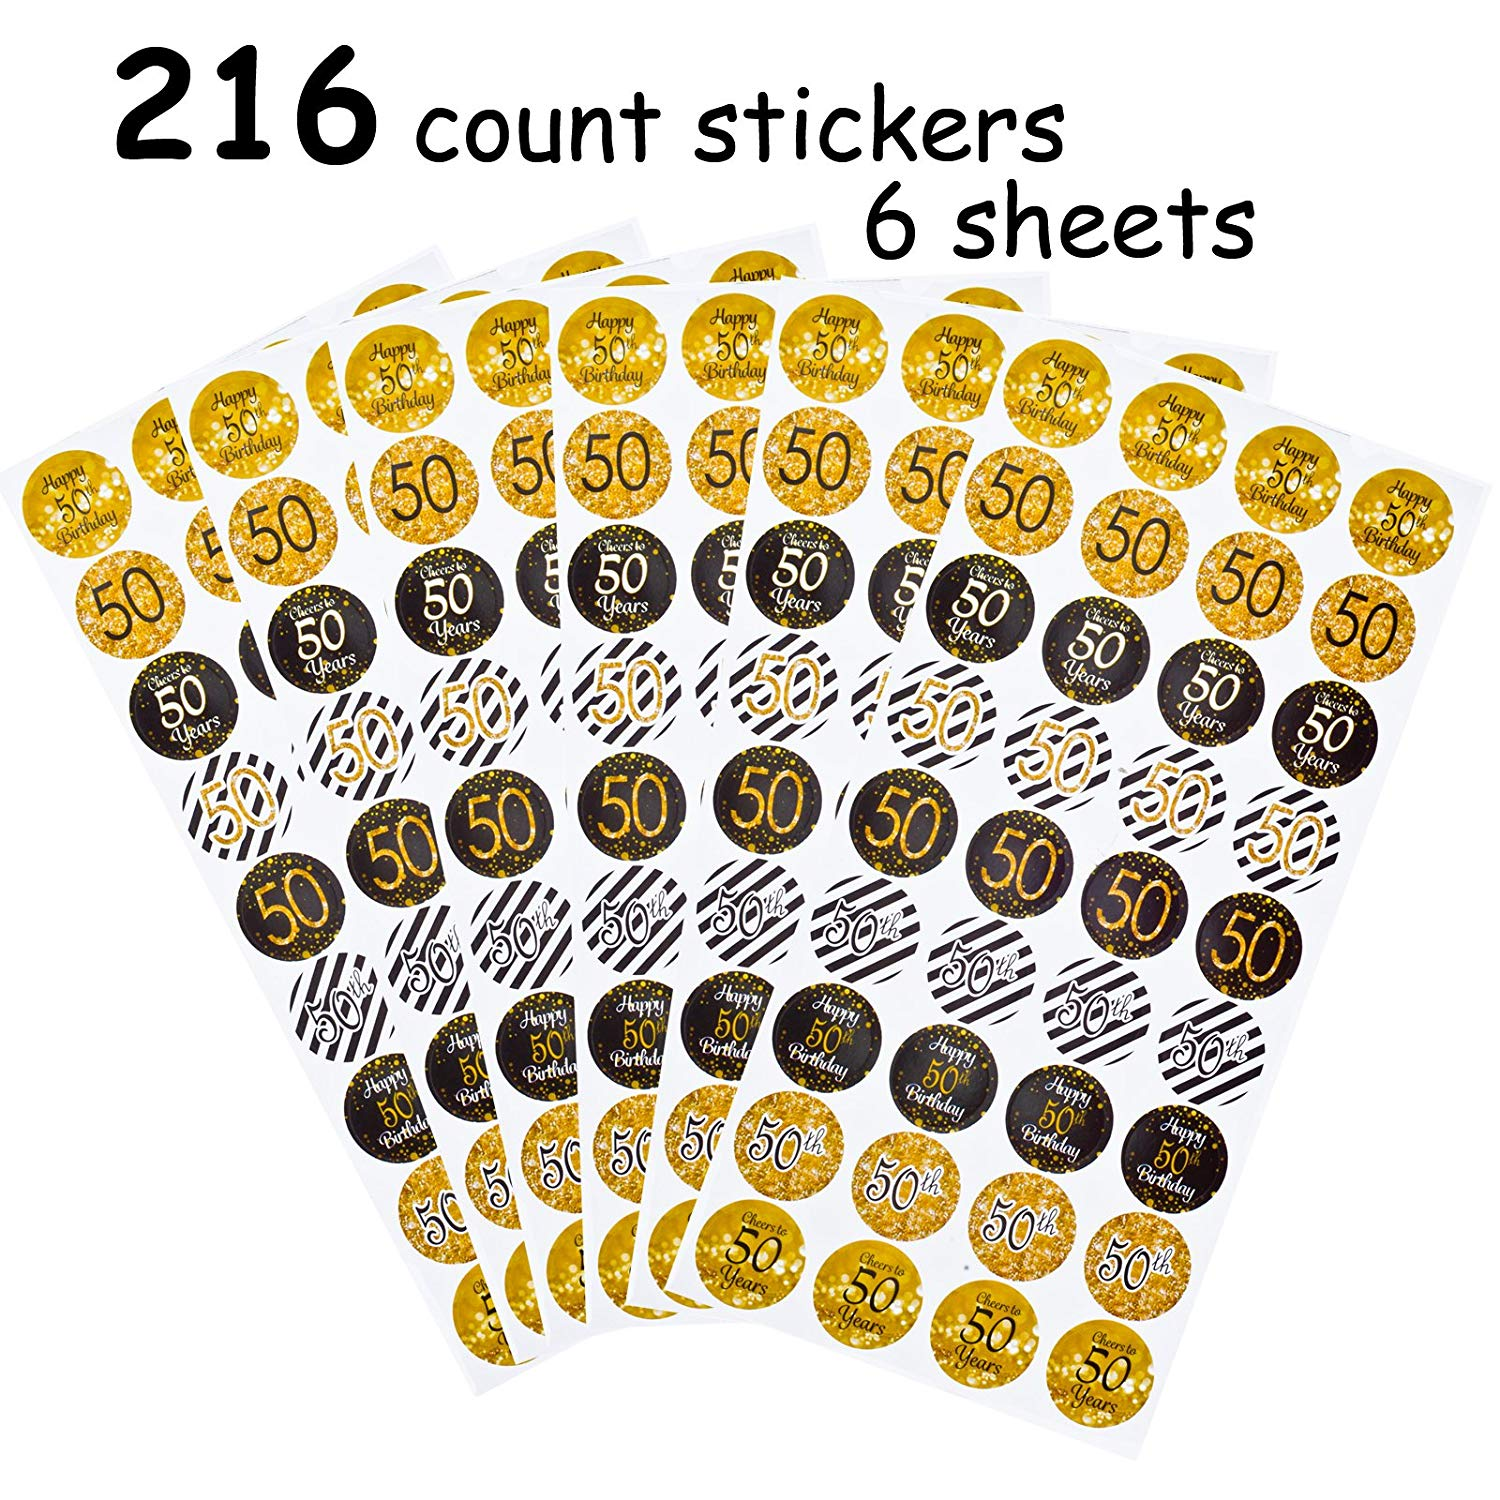 FECEDY 50th Happy Birthday Stickers 50 Anniversary Party Decorations Gold and Black 216 Count/Pack